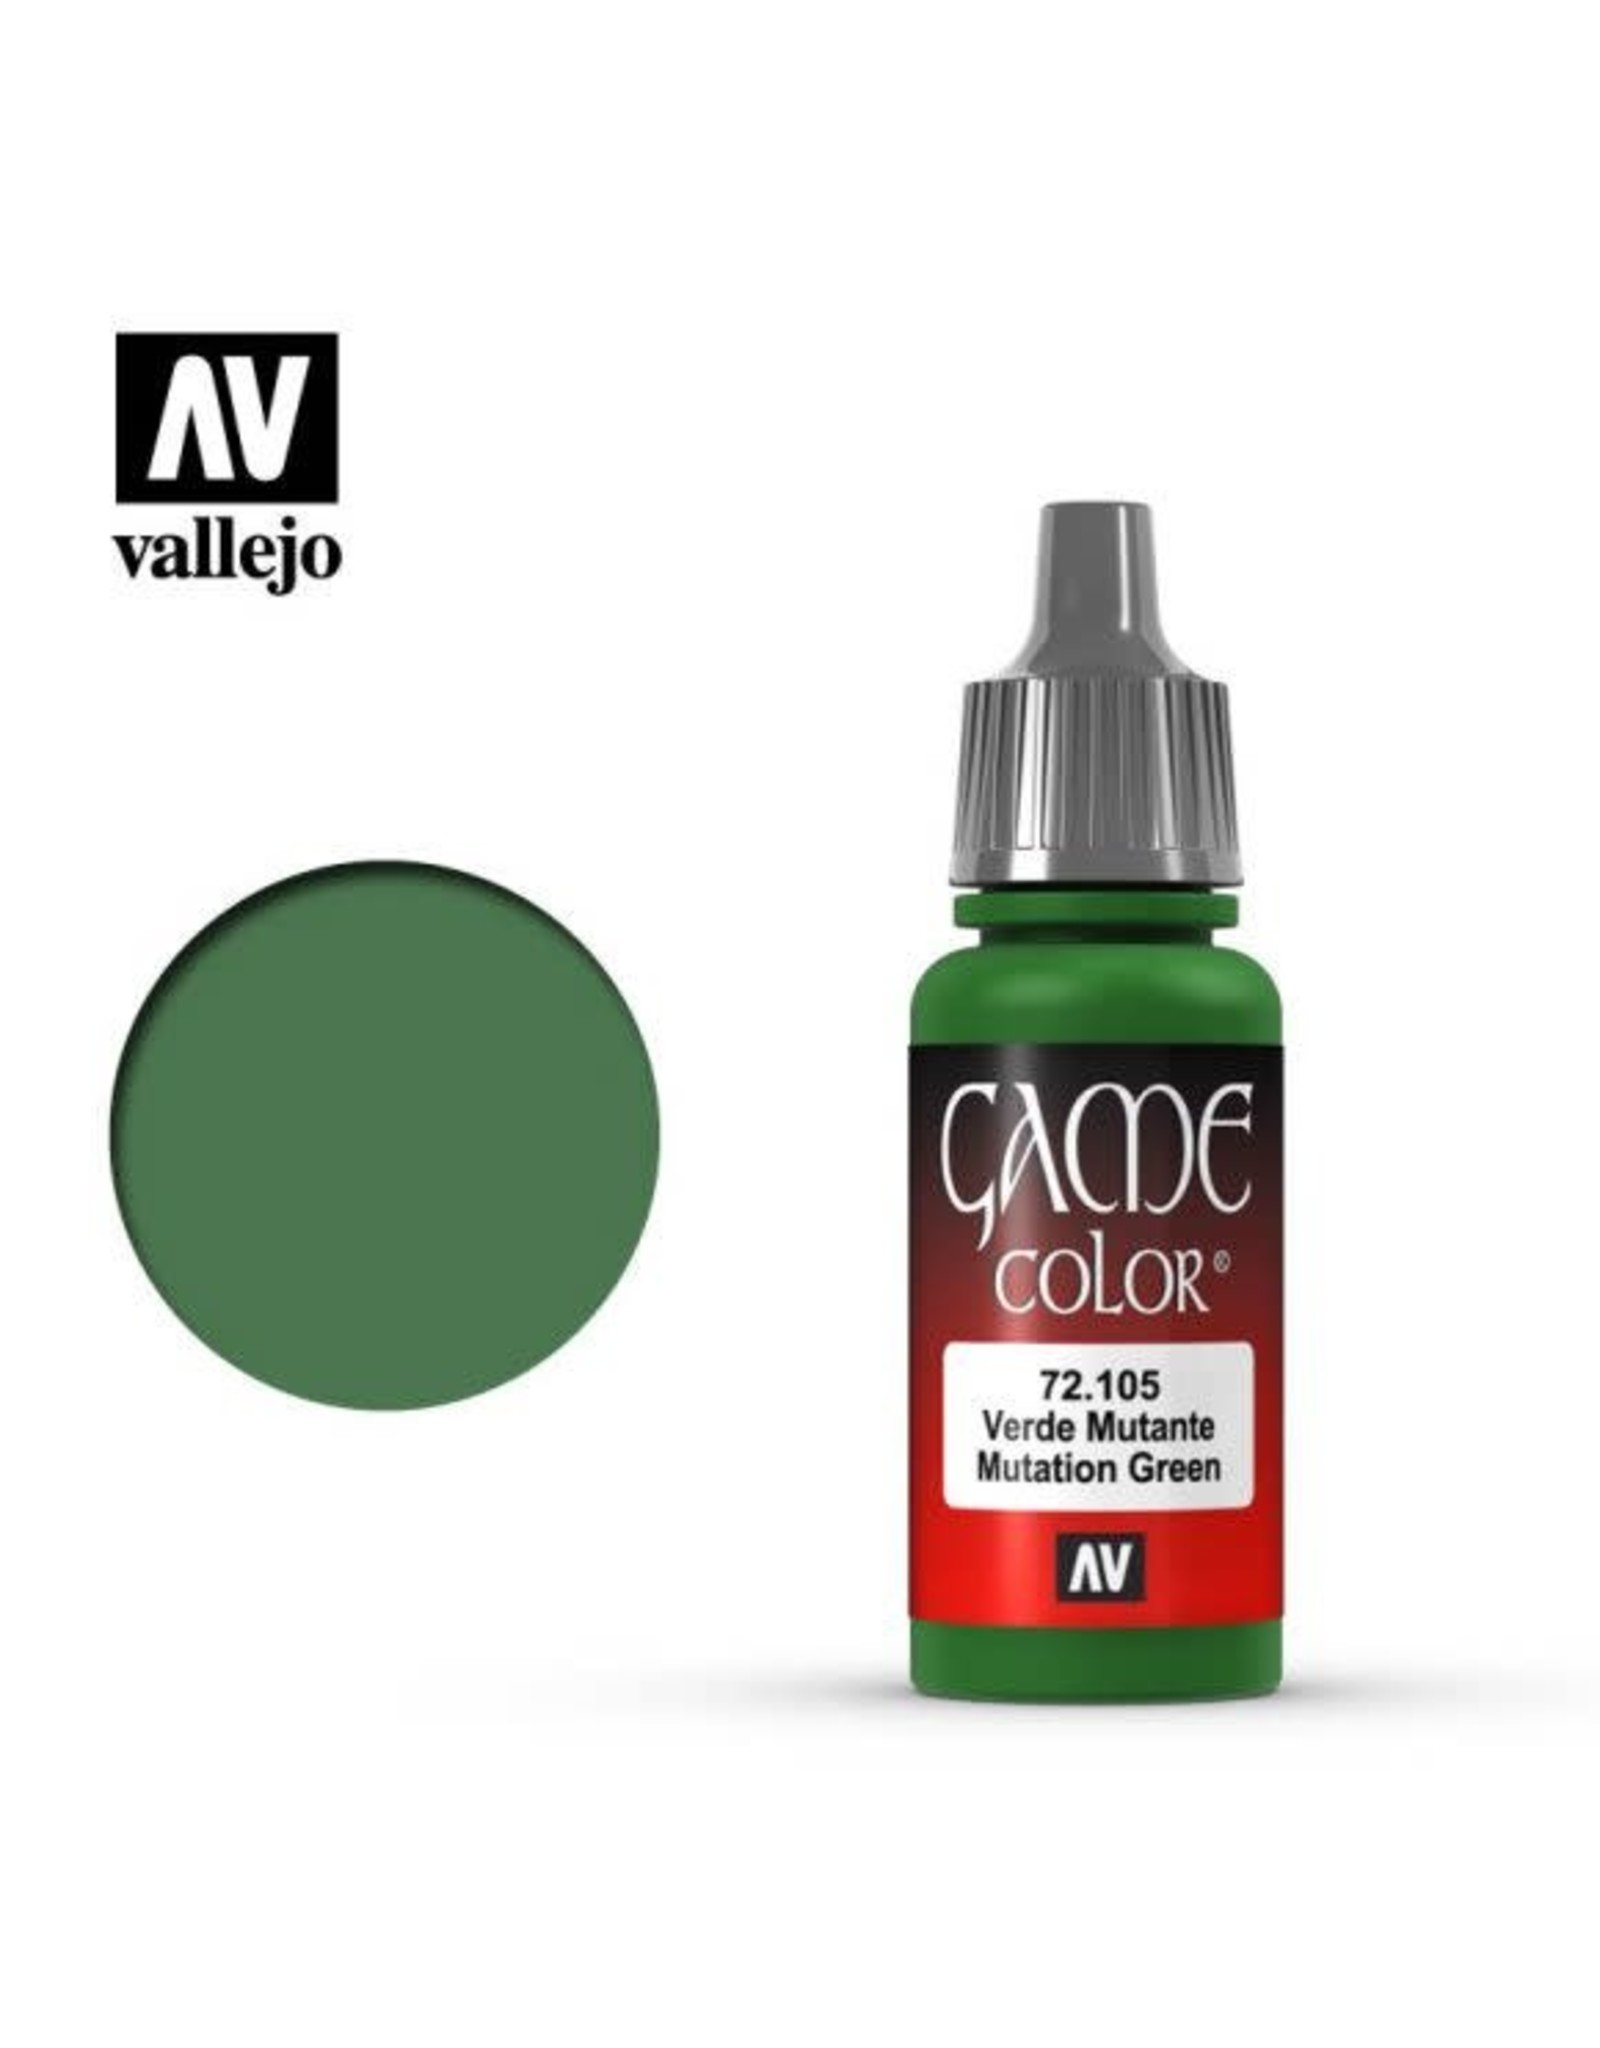 Vallejo Vallejo Game Color Paint: Mutation Green 72.105